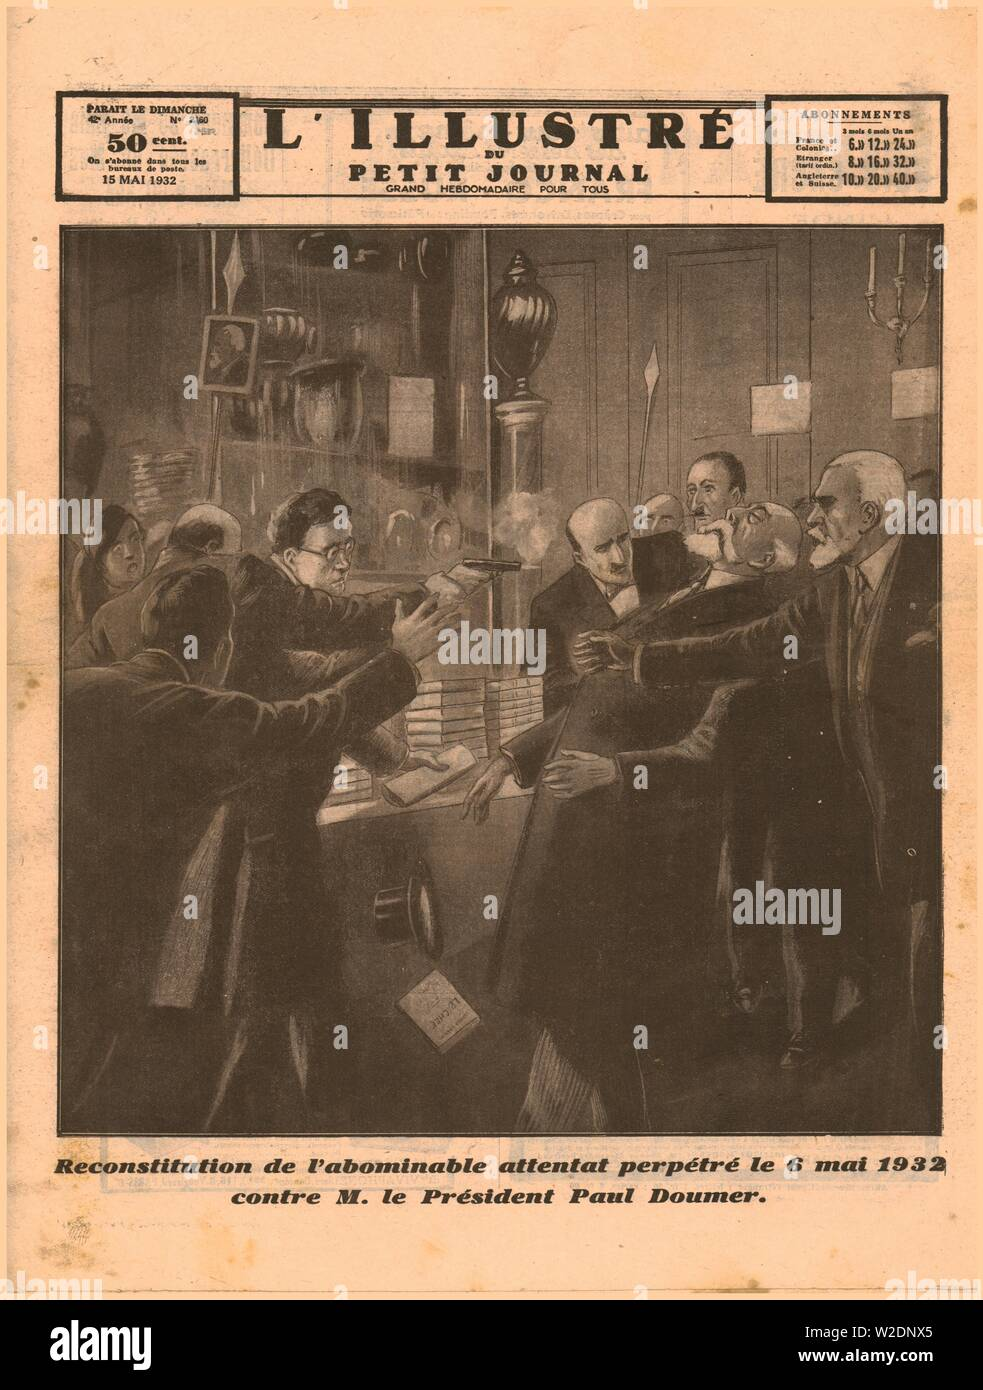 The assassination of President Paul Doumer, 1932. 'Reconstitution de l'abominable attentat perpetré le 6 Mai 1932 contre M. le President Paul Doumer'. 'Representation of the abominable attack perpetrated on 6 May 1932 against President Paul Doumer'. French president Paul Doumer (1857-1932) was shot by Russian émigré Paul Gorguloff at a book fair at the Hôtel Salomon de Rothschild in Paris. Author Claude Farrère wrestled with Gorguloff until police arrived. Doumer died in hospital the following day, the only French president to die of a gunshot wound. Gorguloff was foun - Stock Image